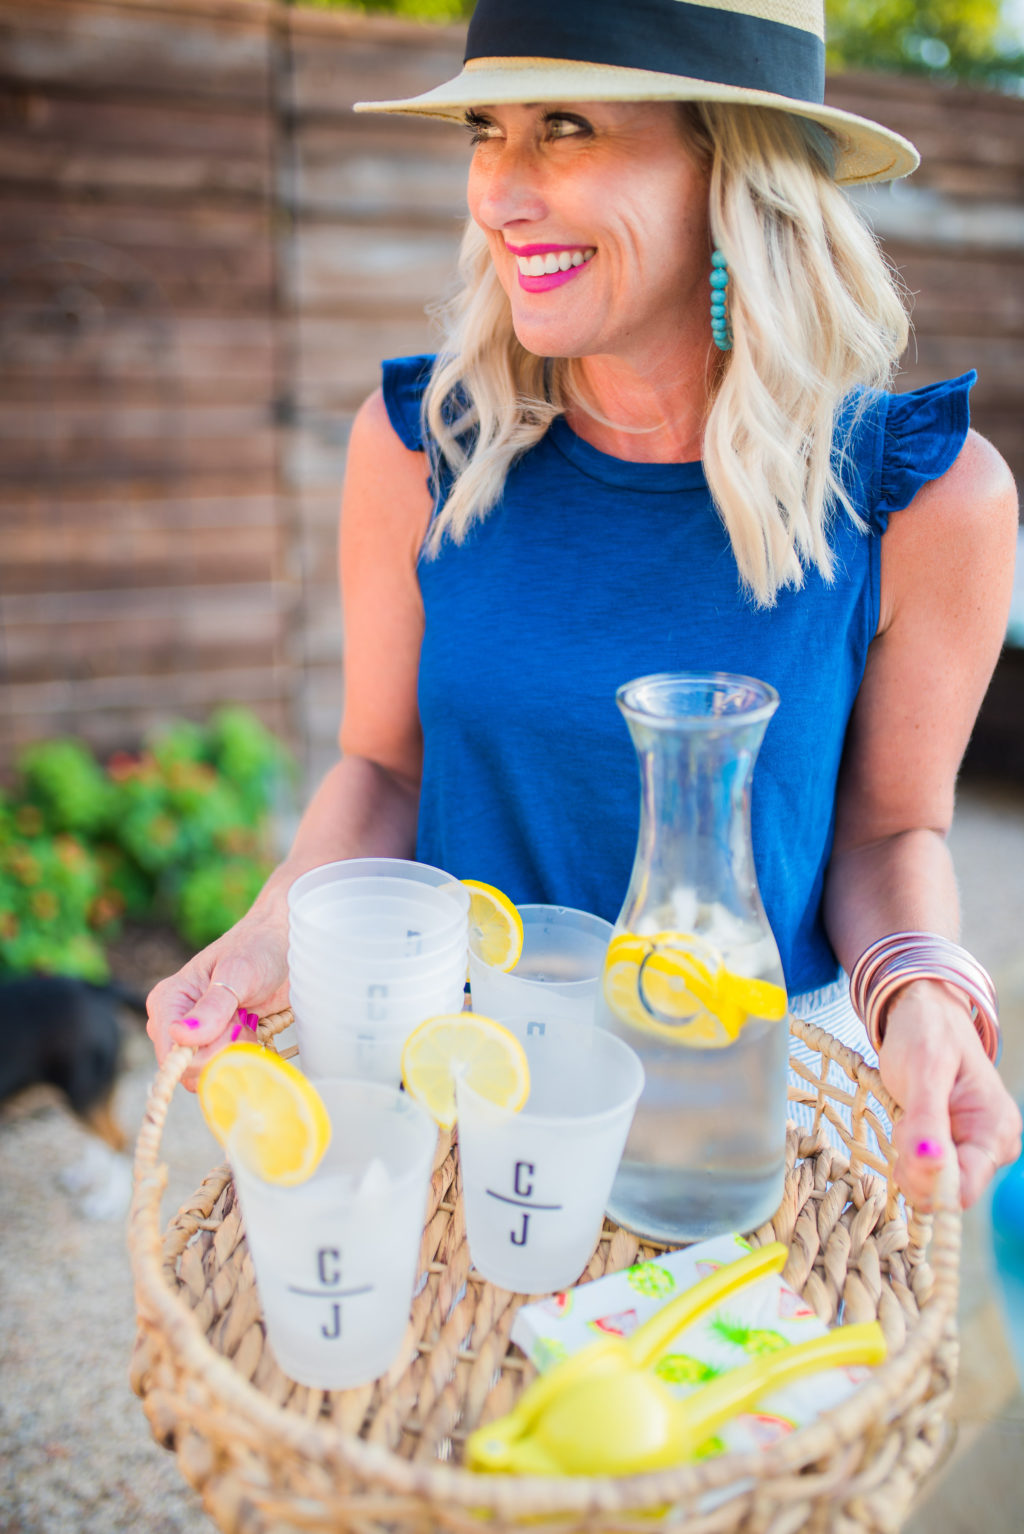 mom serving water with lemons during summer in backyard